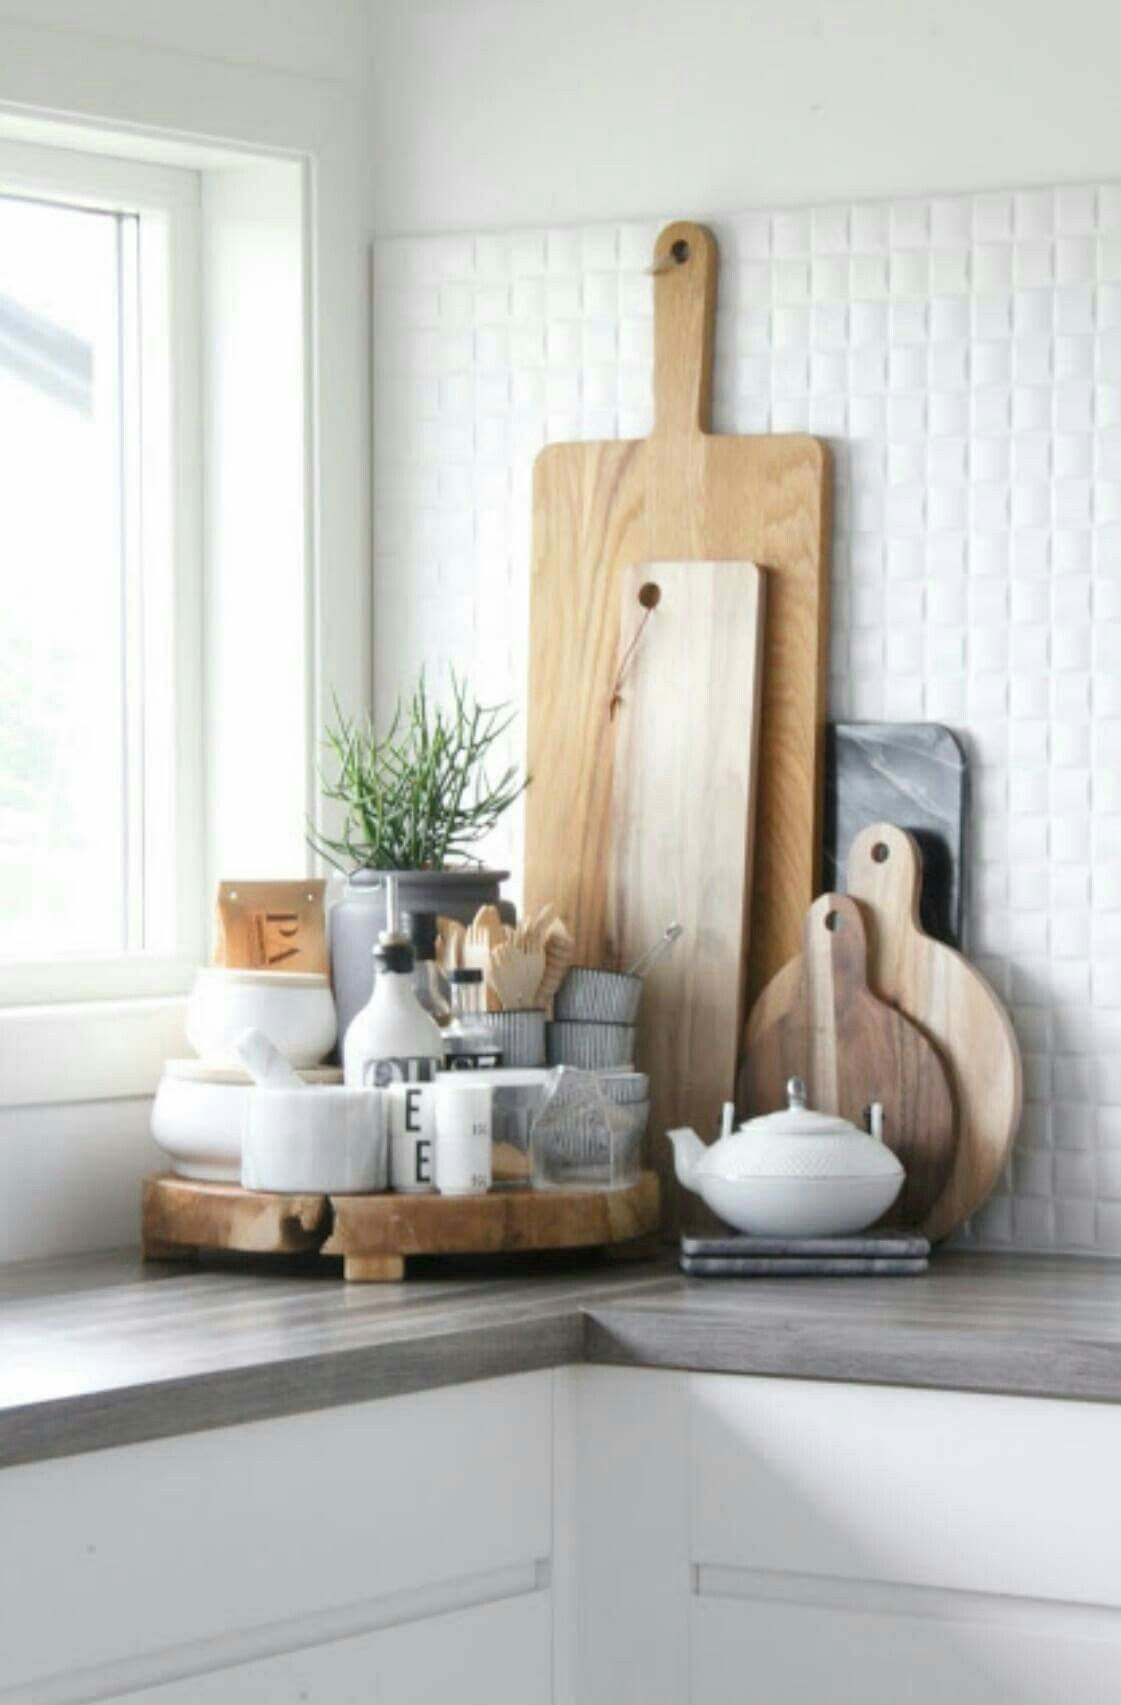 Layered cutting boards | Kitchen ideas | Pinterest | Layered cuts ...